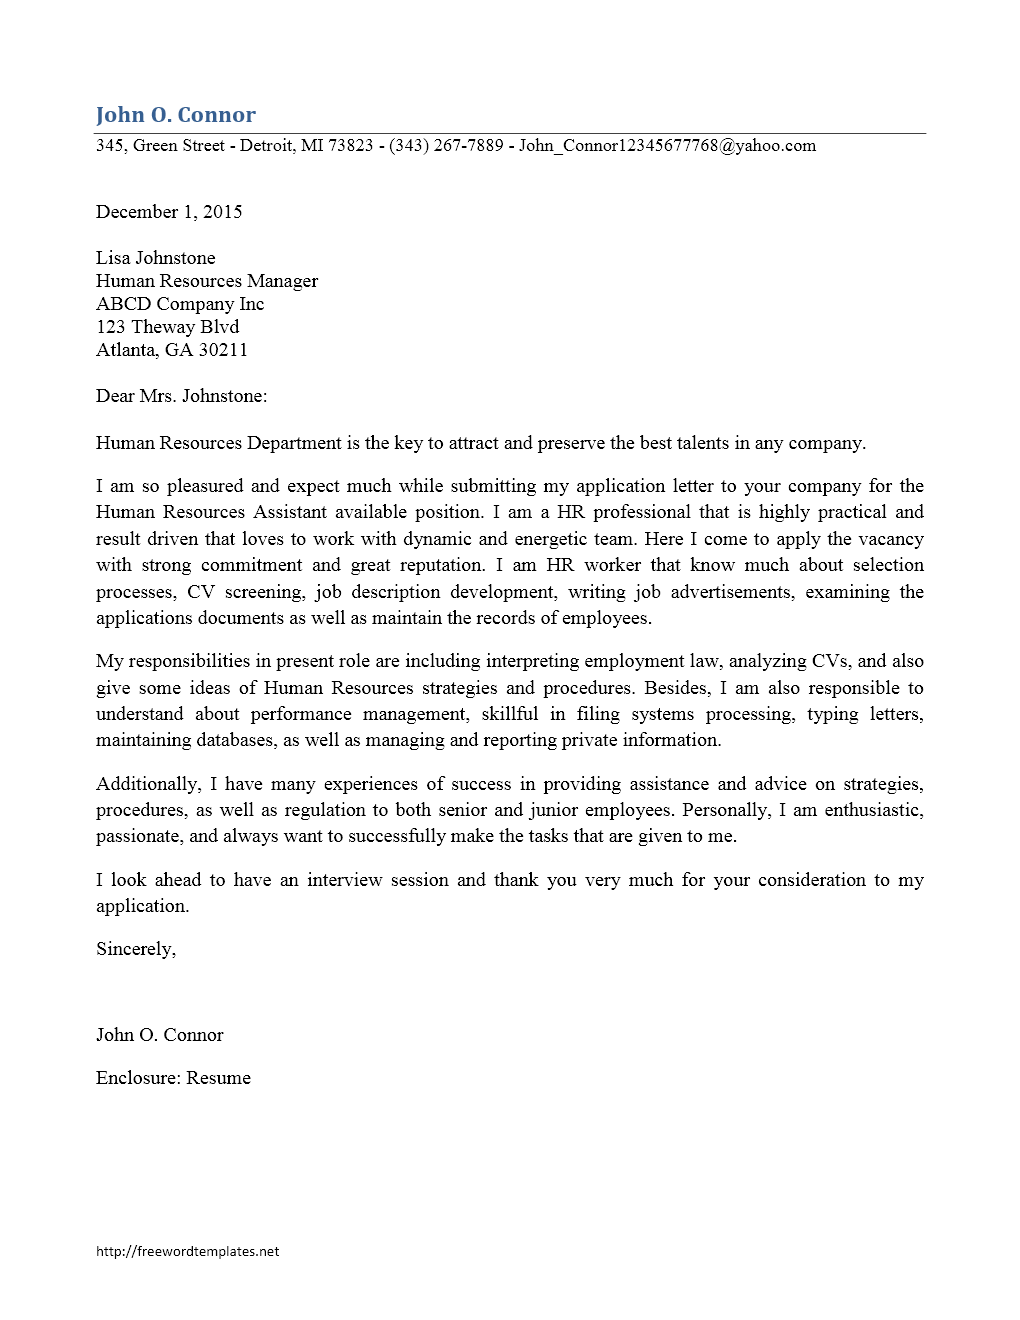 Cover Letter   Human Resources Staff  Cover Letter Human Resources